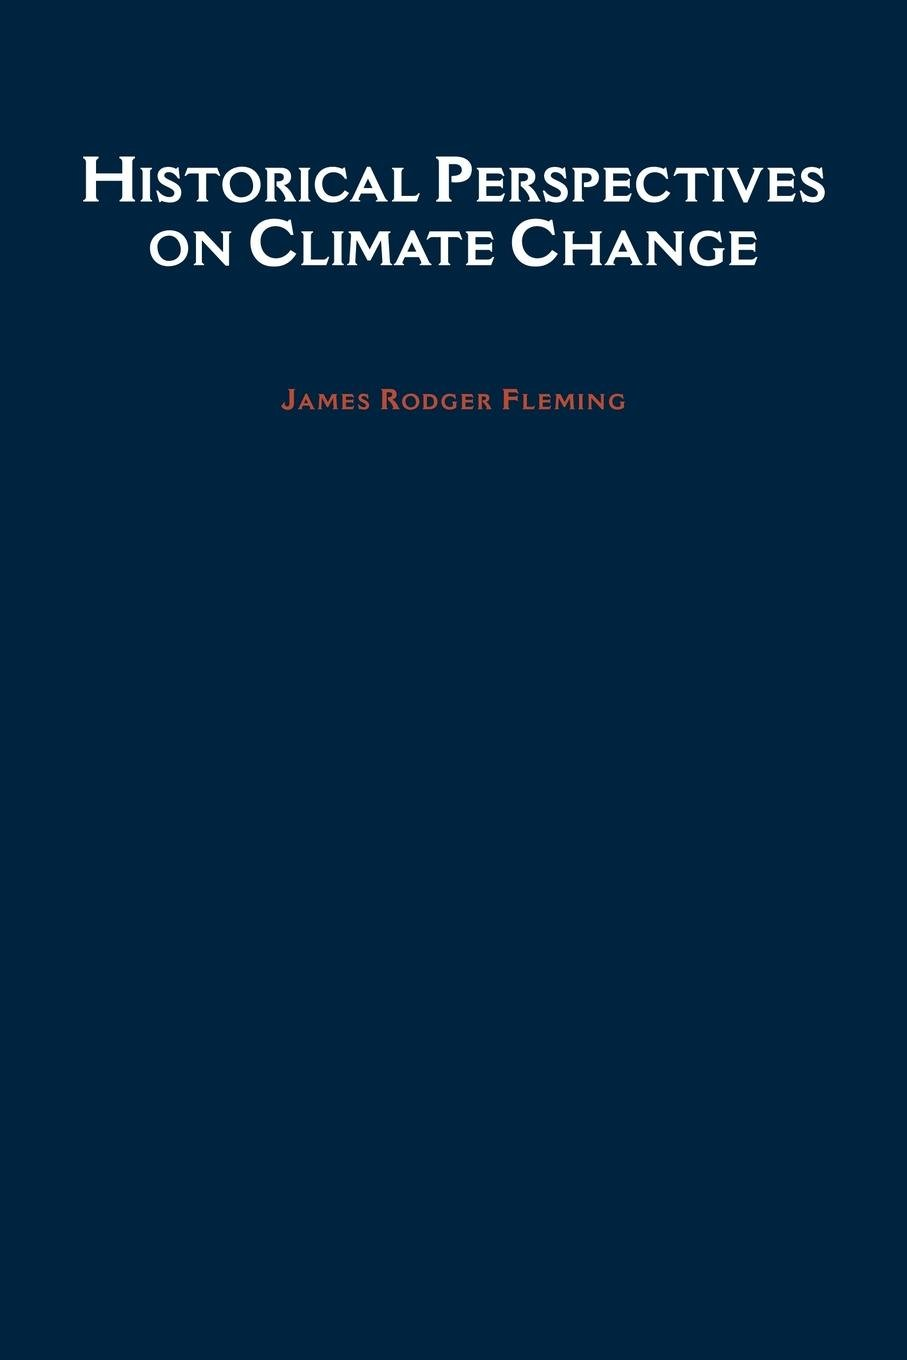 Historical Perspectives on Climate Change